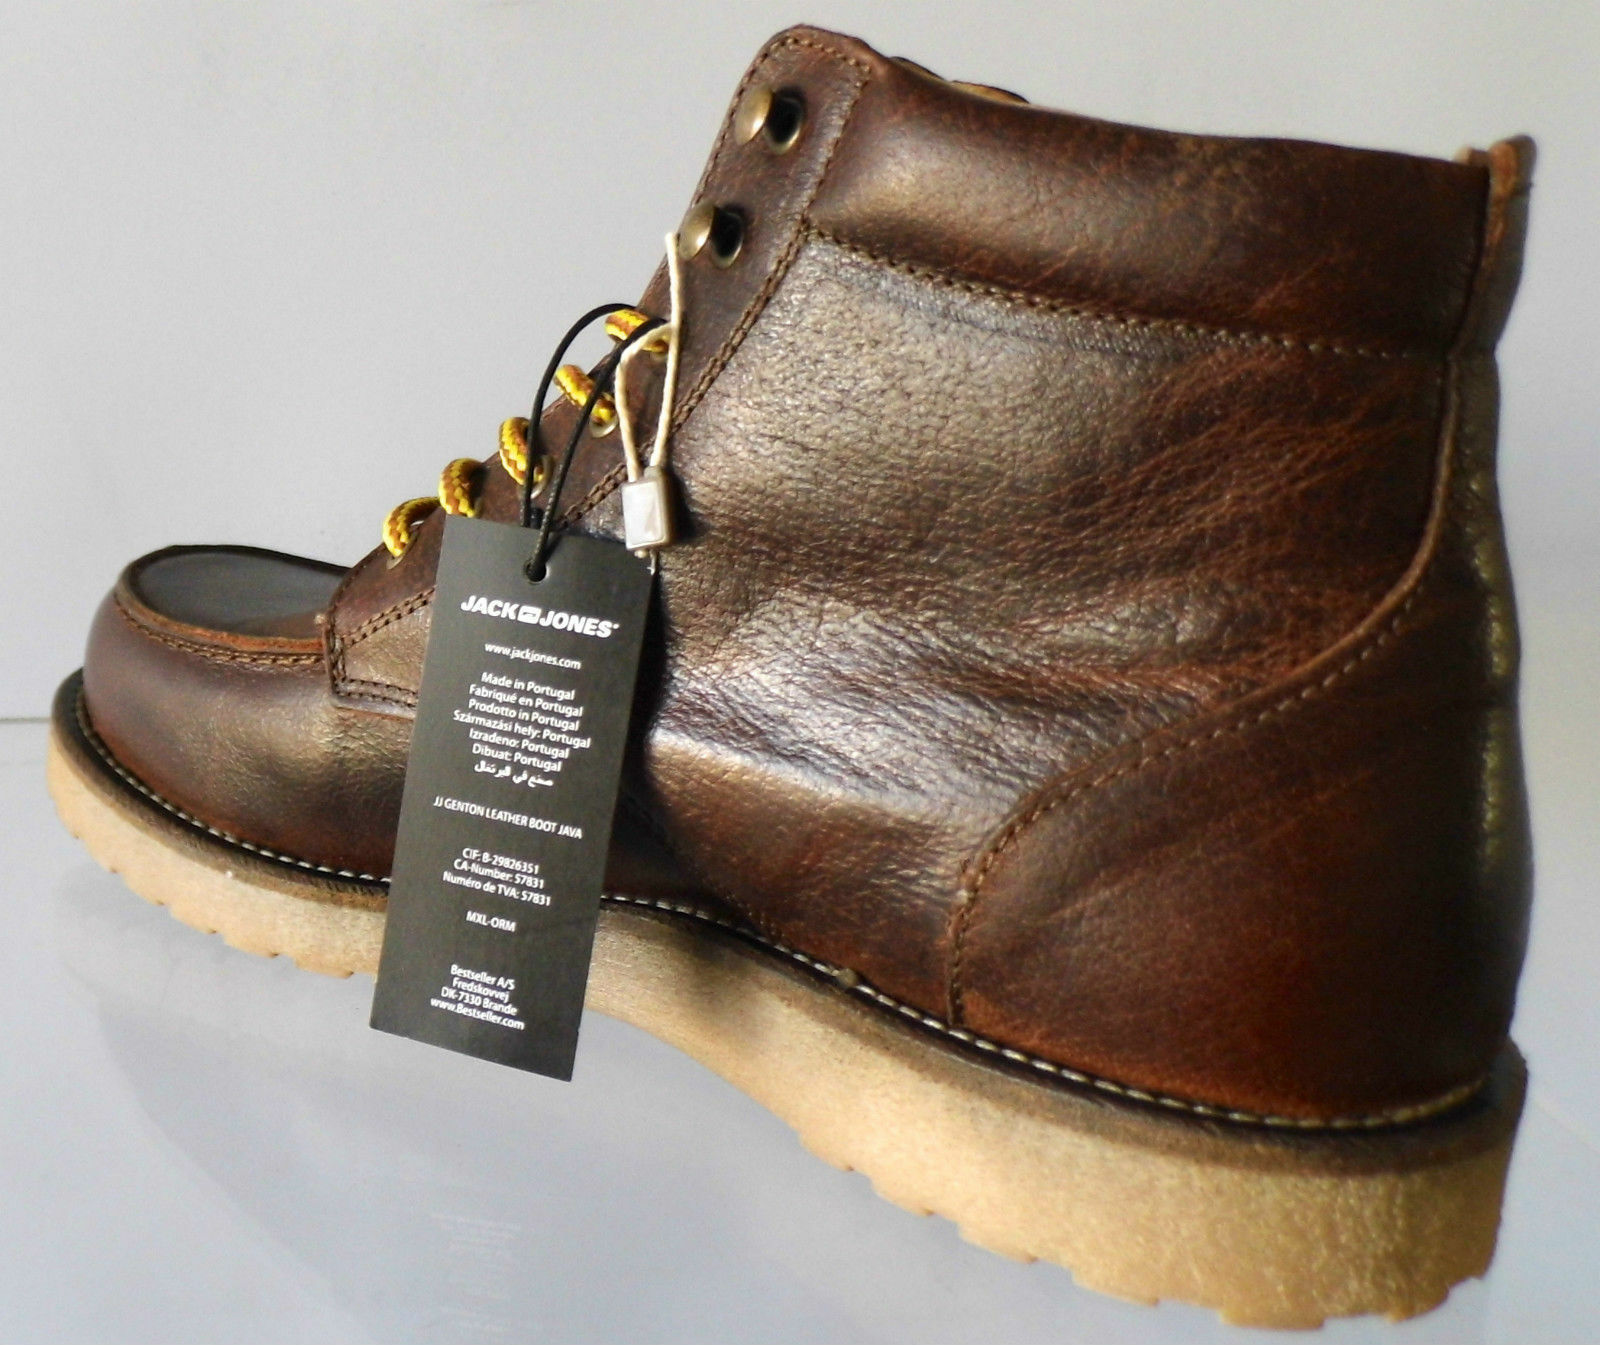 NIB    198 JACK & JONES GENTON  HANDMADE IN PORTUGAL JAVA ANKLE stivali. SZ 43 10 M 5a8e66